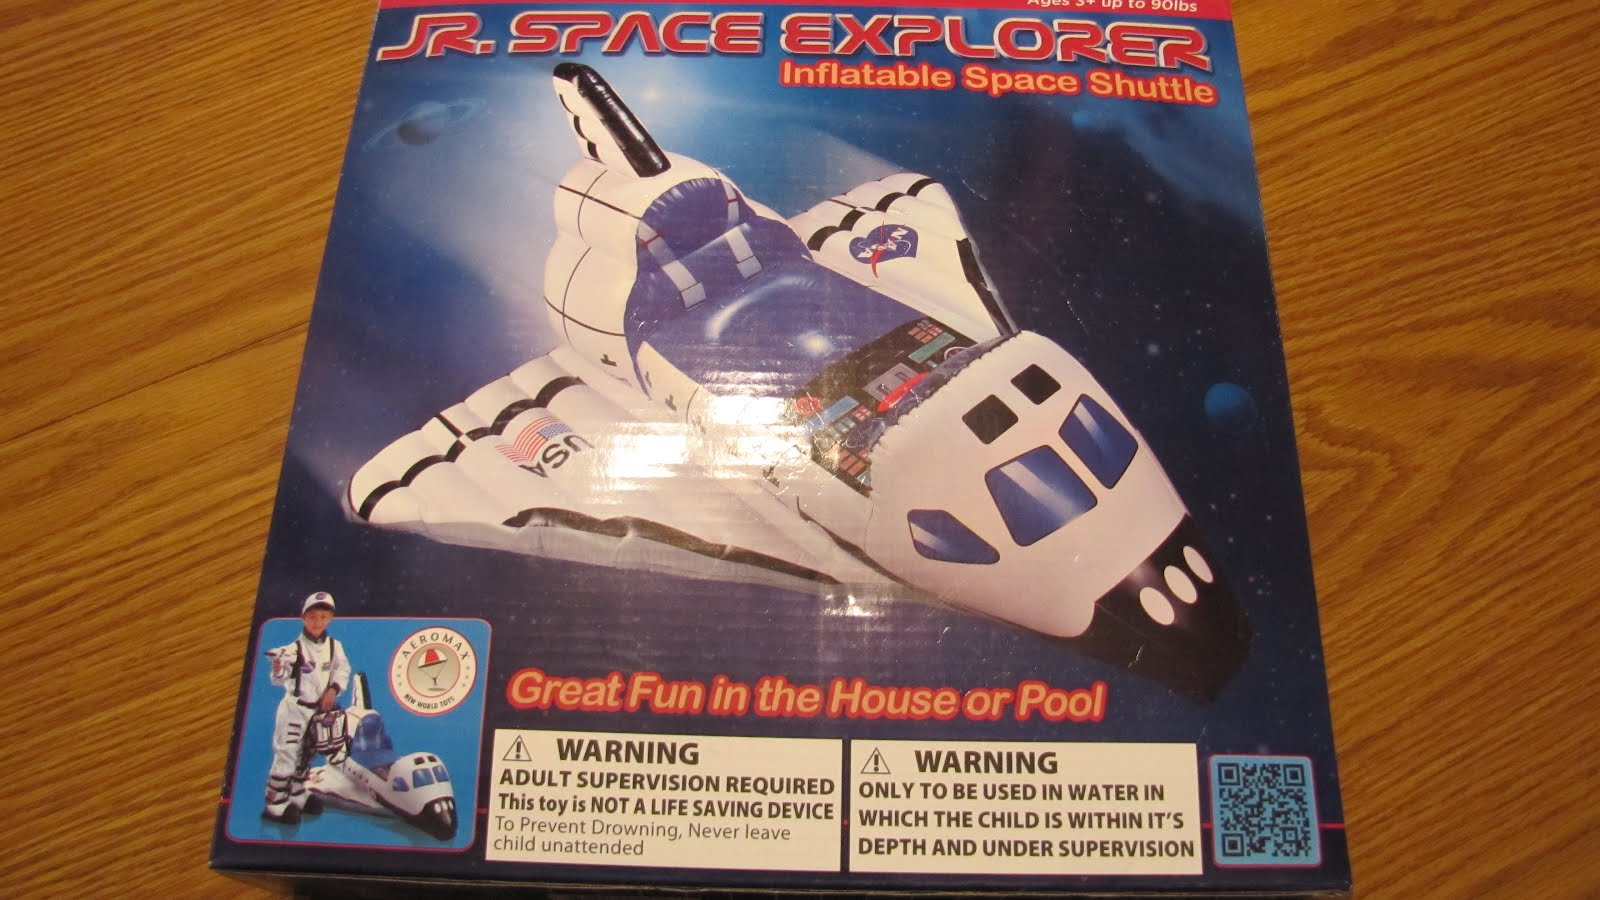 aeromax jr space explorer inflatable space shuttle review